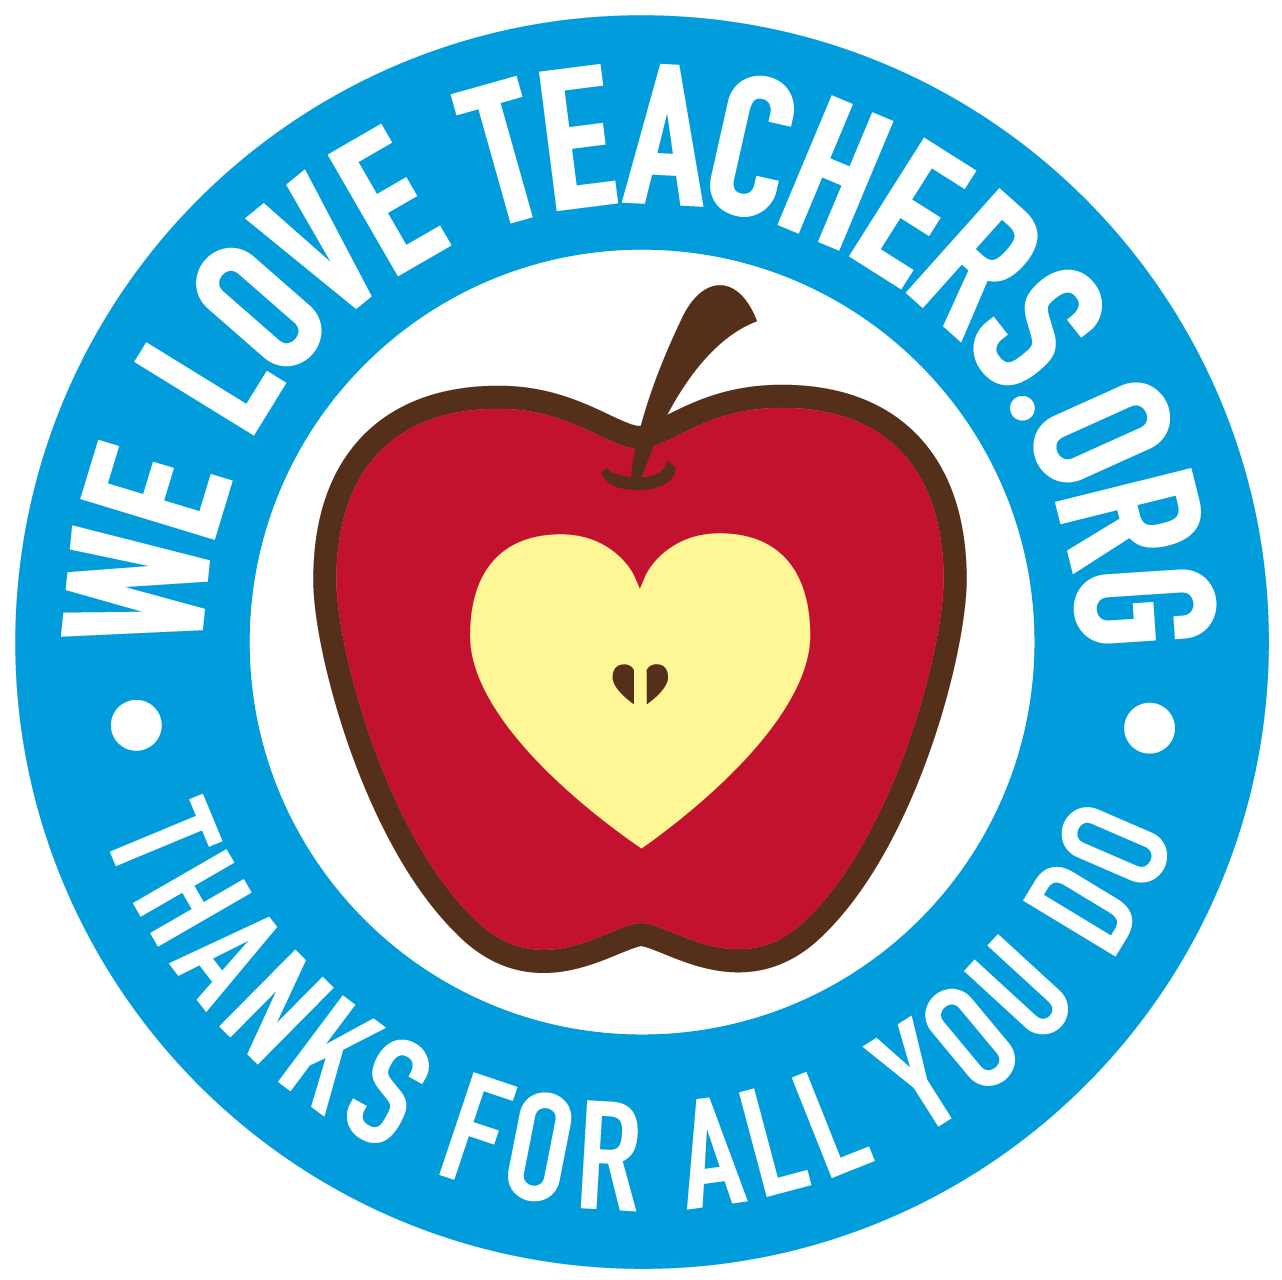 weloveteachers.org, thanks for all you do.